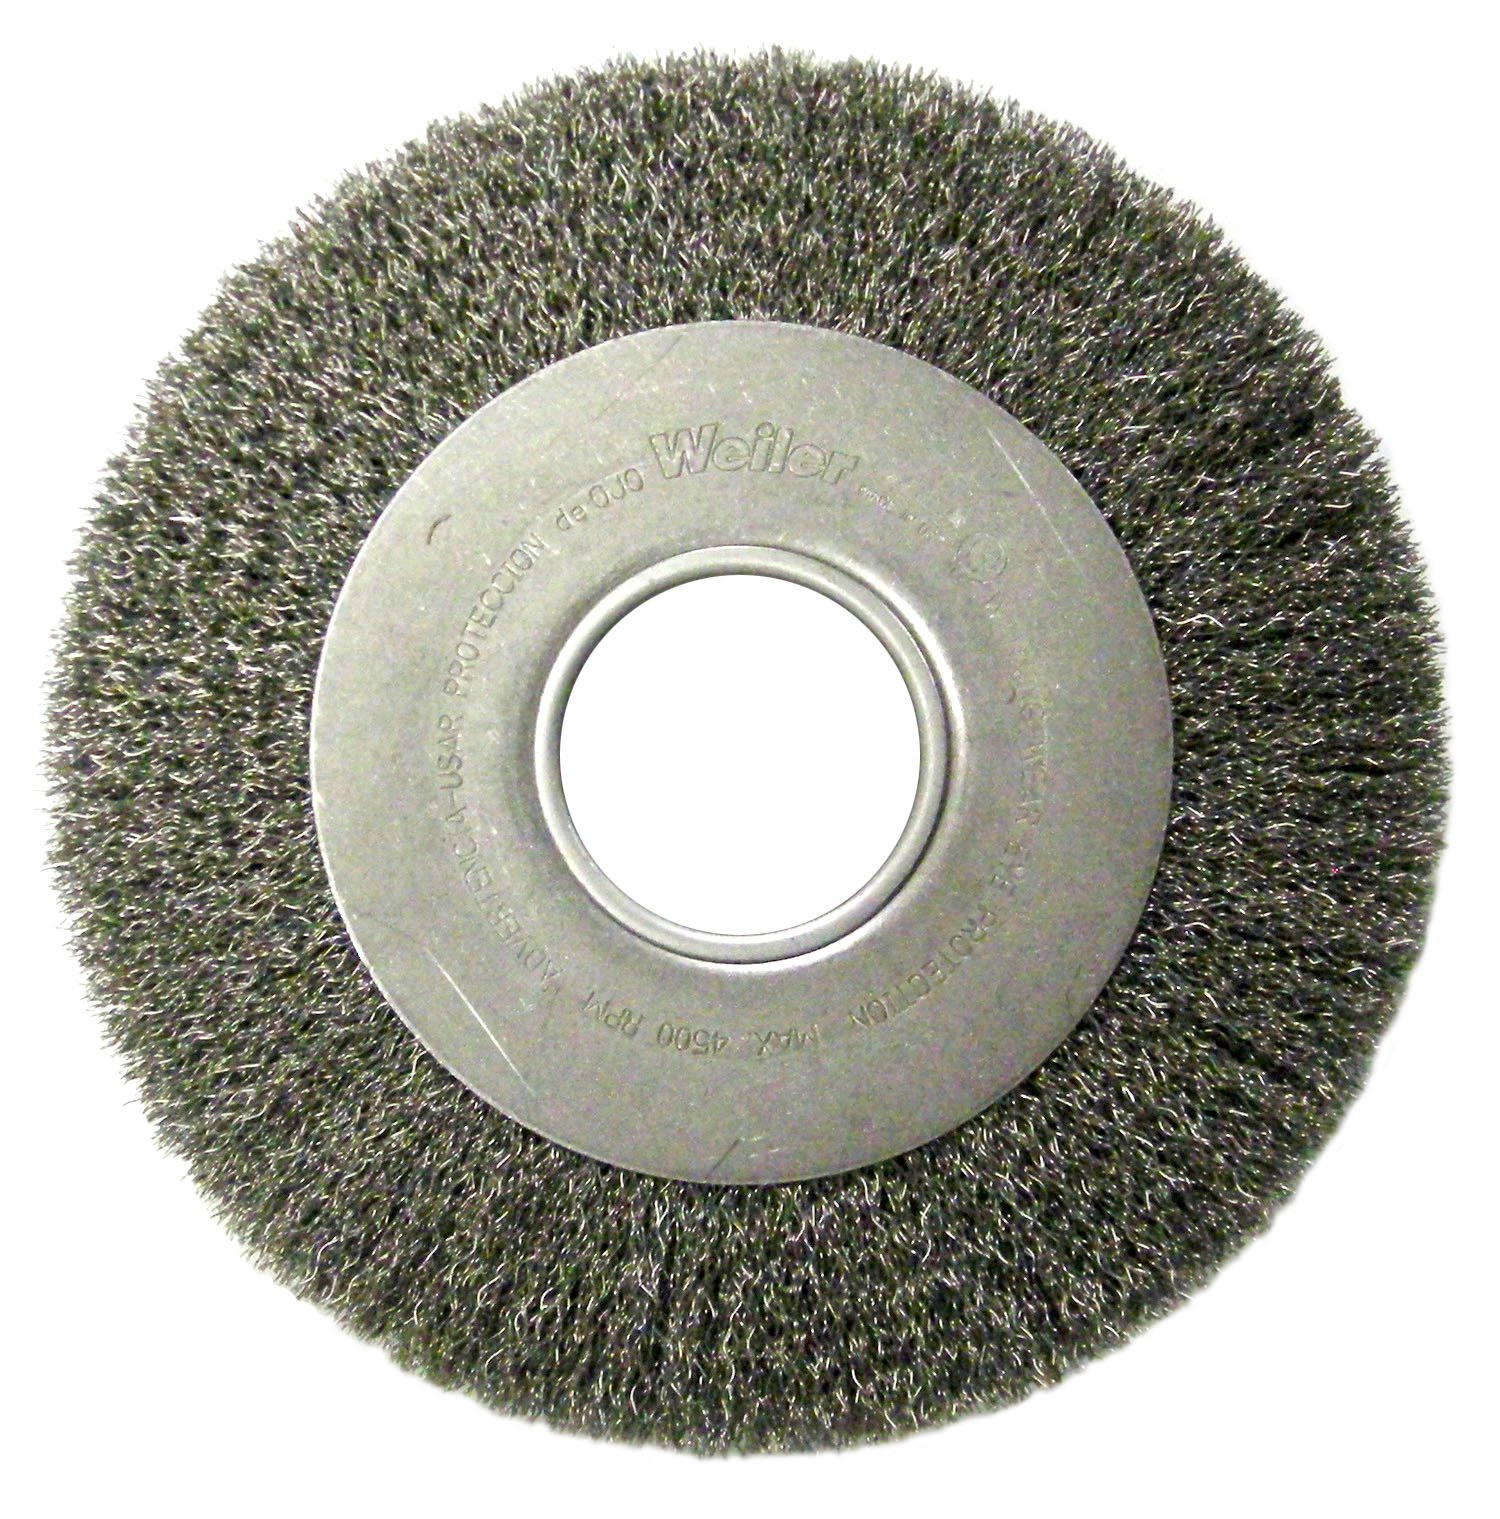 Weiler 6490 Face Crimped Wire Wheel, 8'' Medium, 0.118'' Stainless Steel Fill, 2'' Arbor Hole